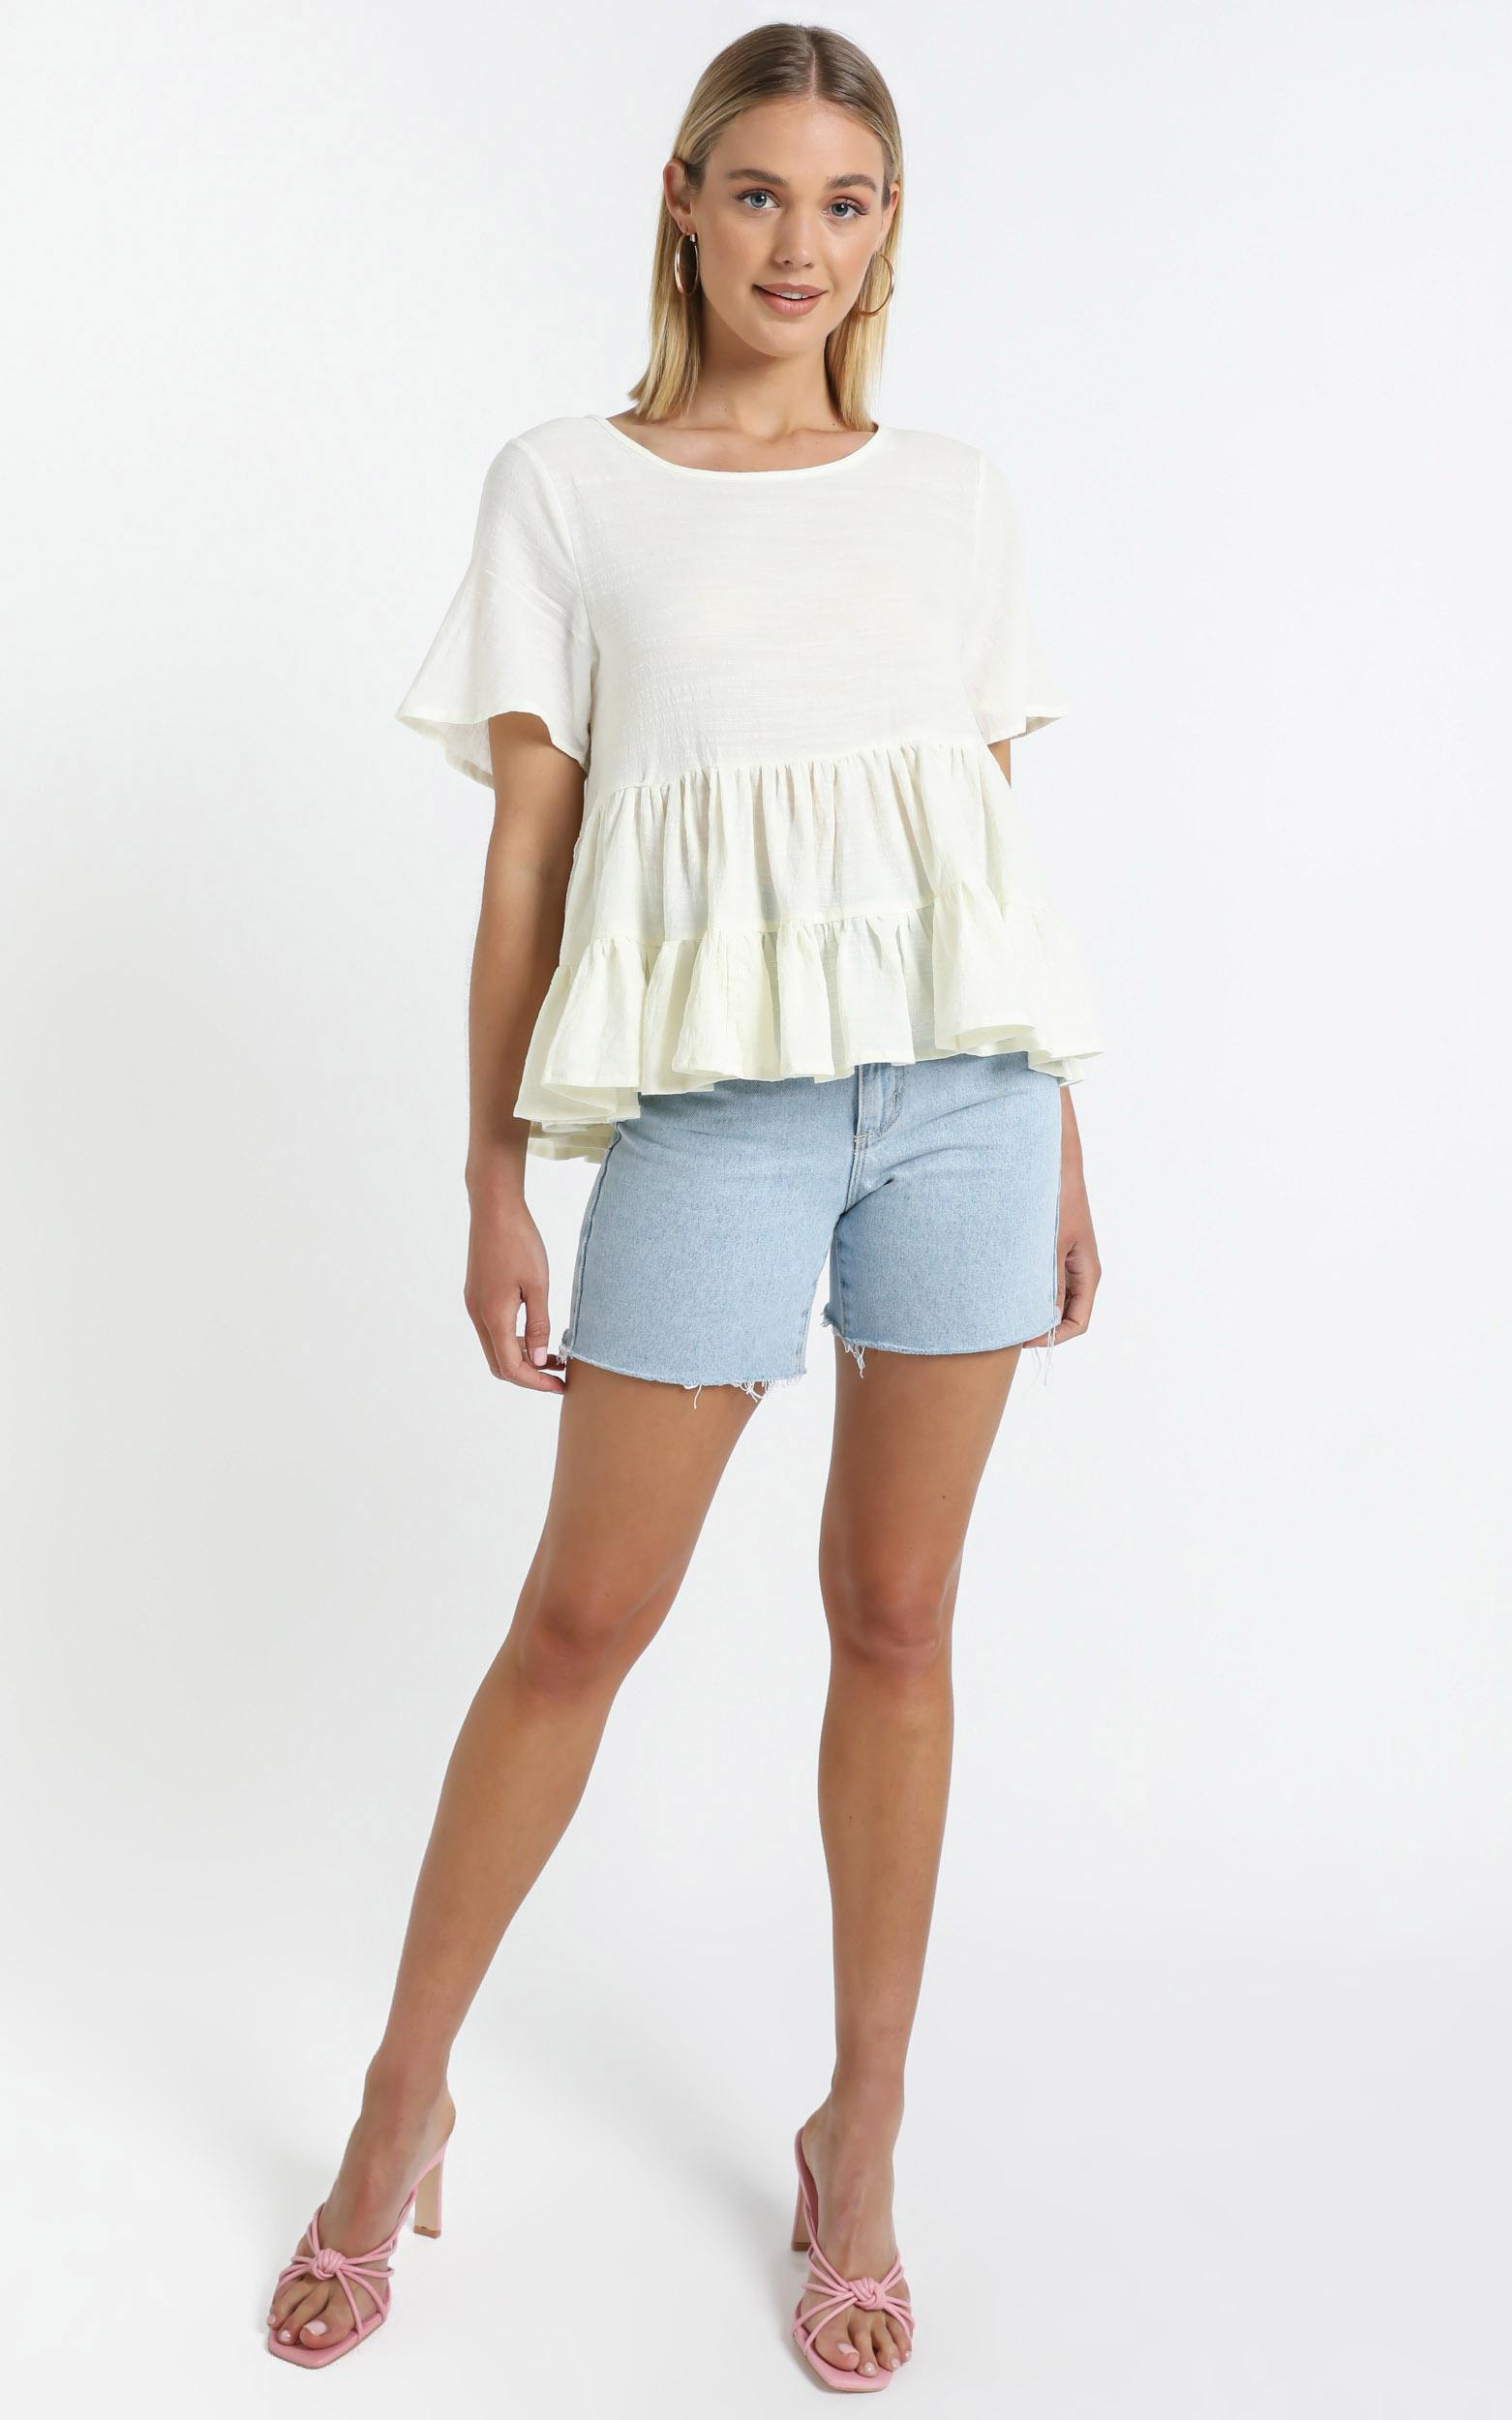 Crush On You Top in White - 14 (XL), White, hi-res image number null